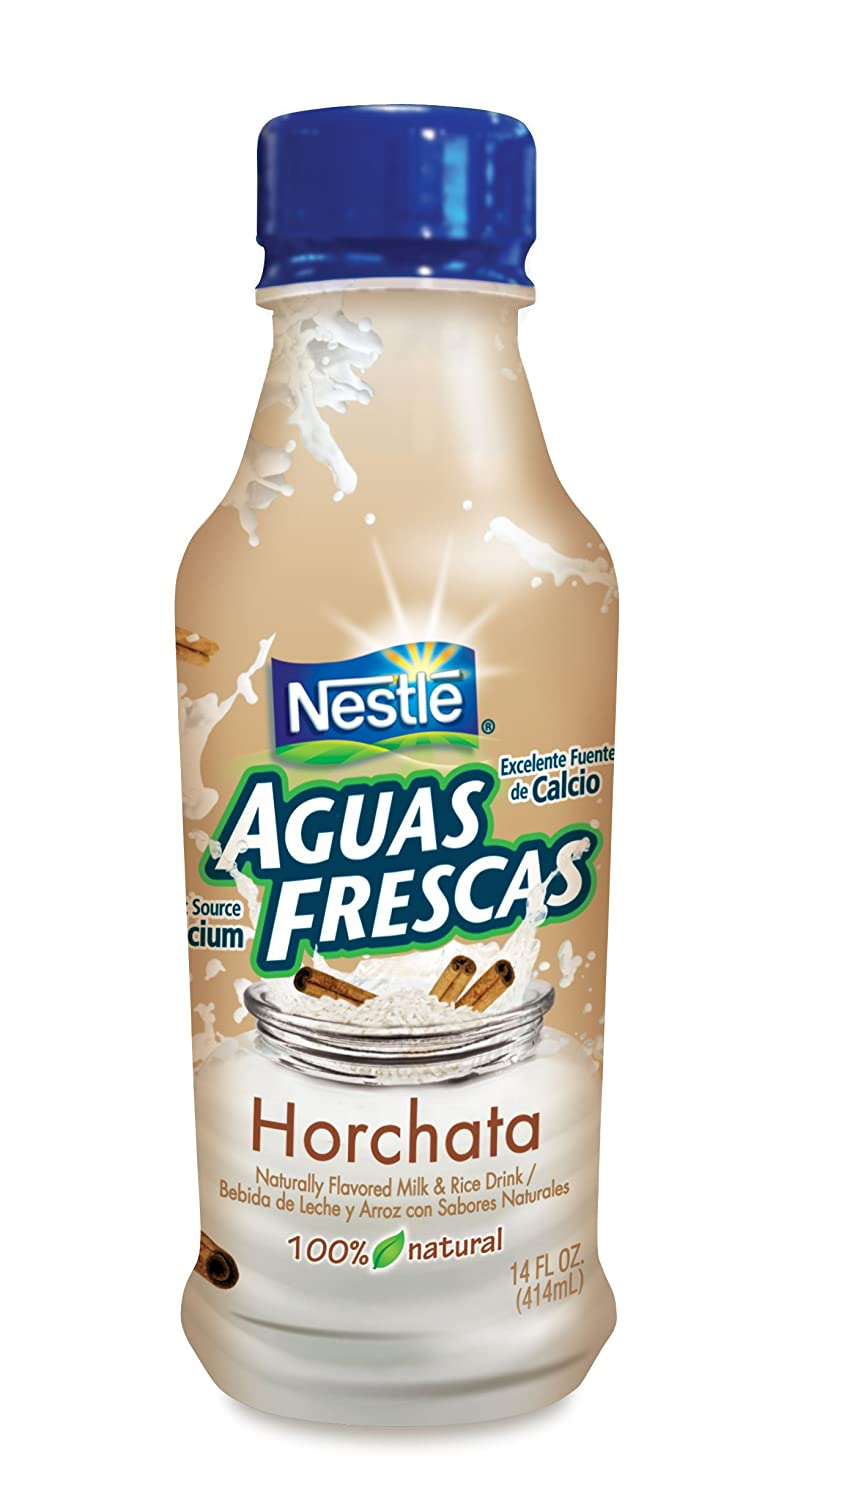 Nestle Aguas Frescas Horchata-Pet, 14-Ounce (Pack of 6): Amazon.com: Grocery & Gourmet Food